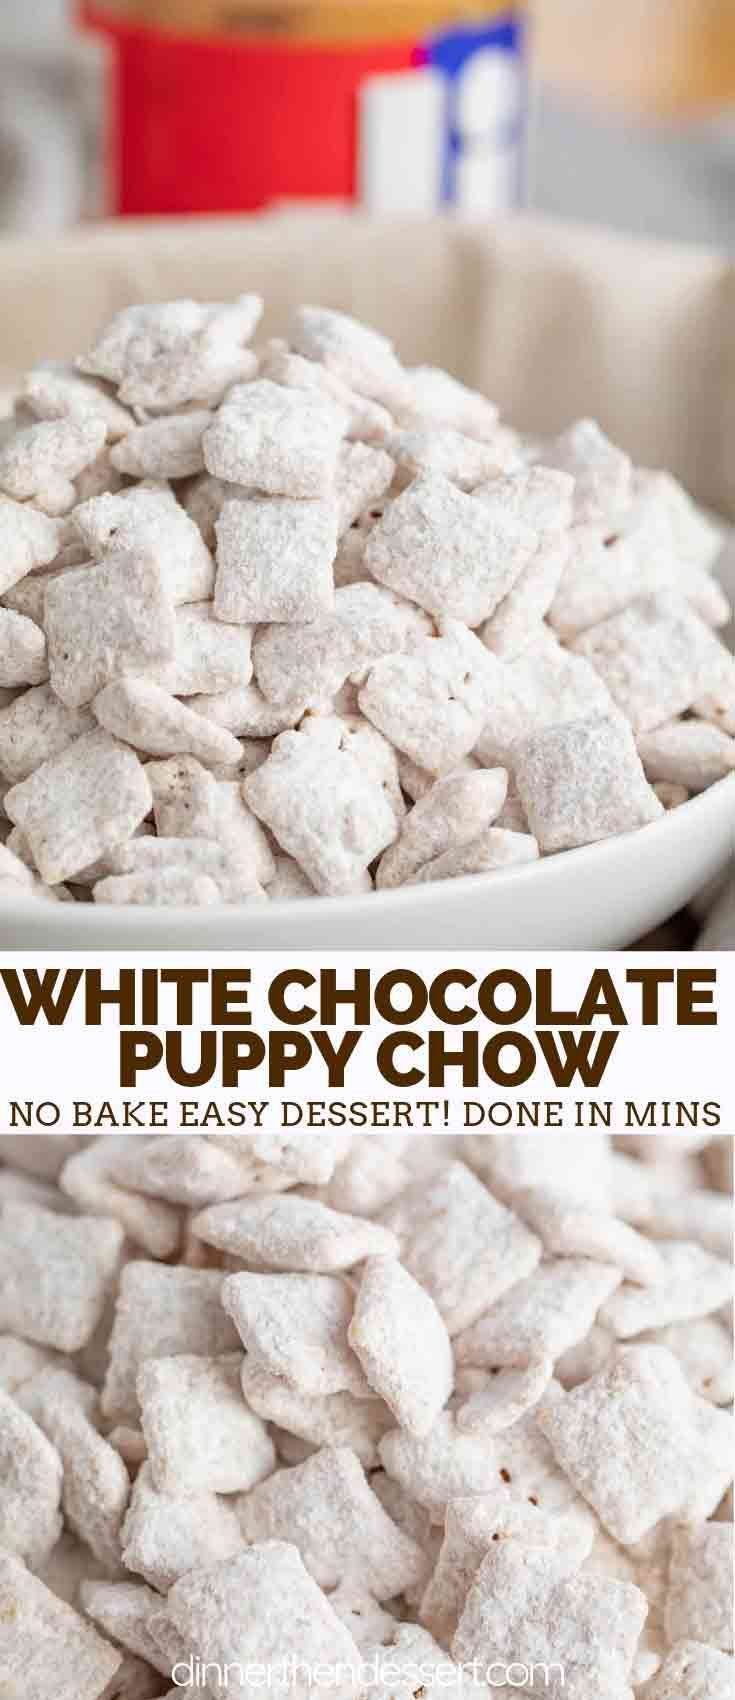 White Chocolate Puppy Chow Muddy Buddies Are Crunchy And Sweet